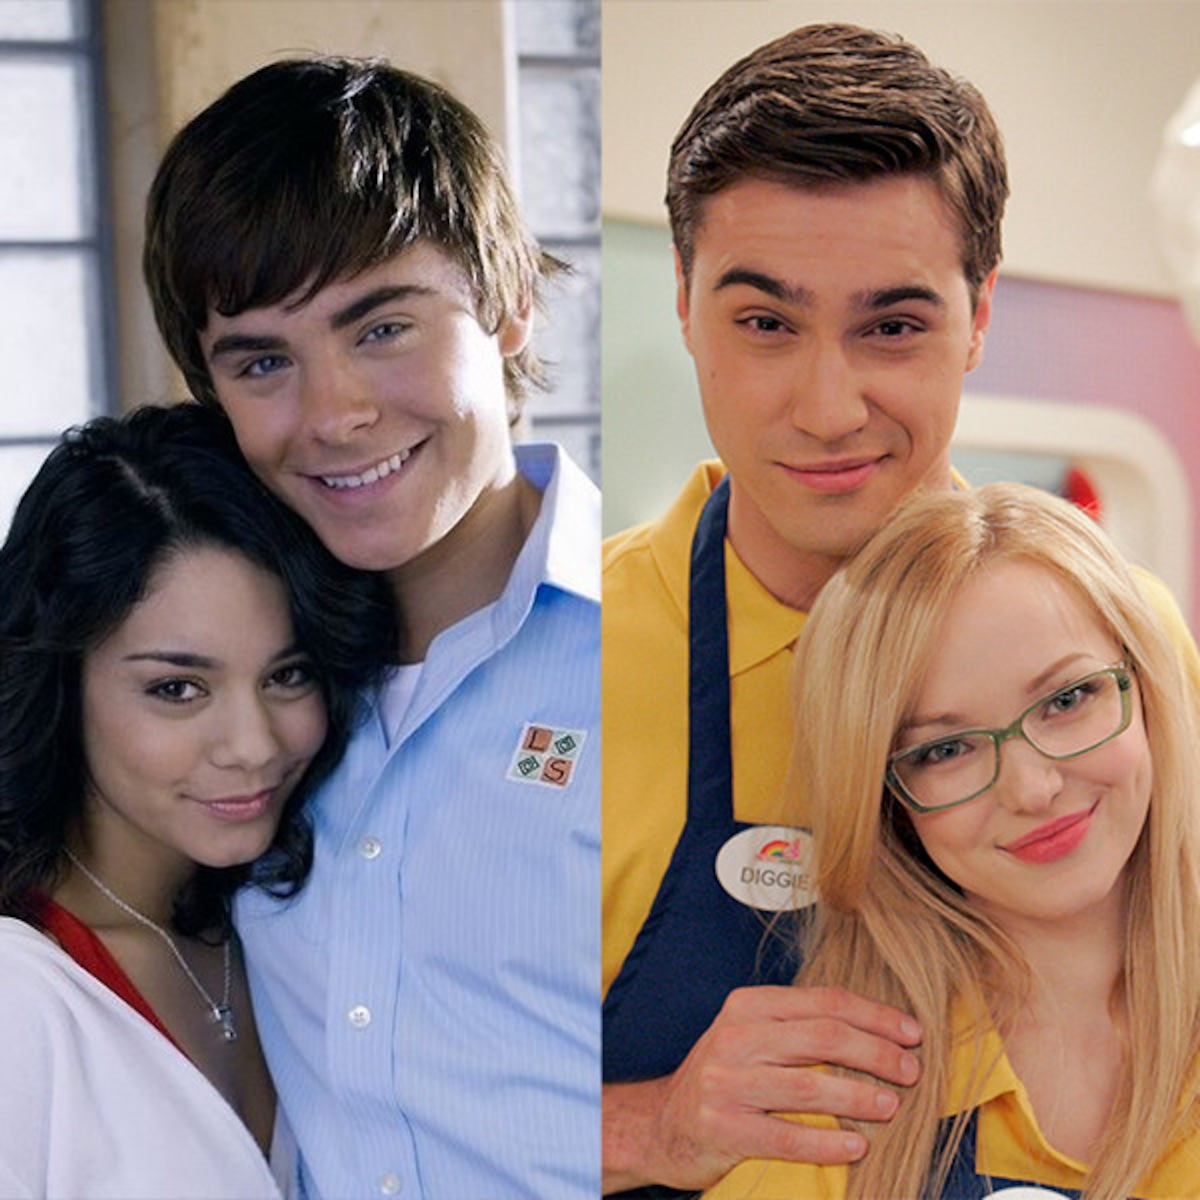 liv and maddie in real life